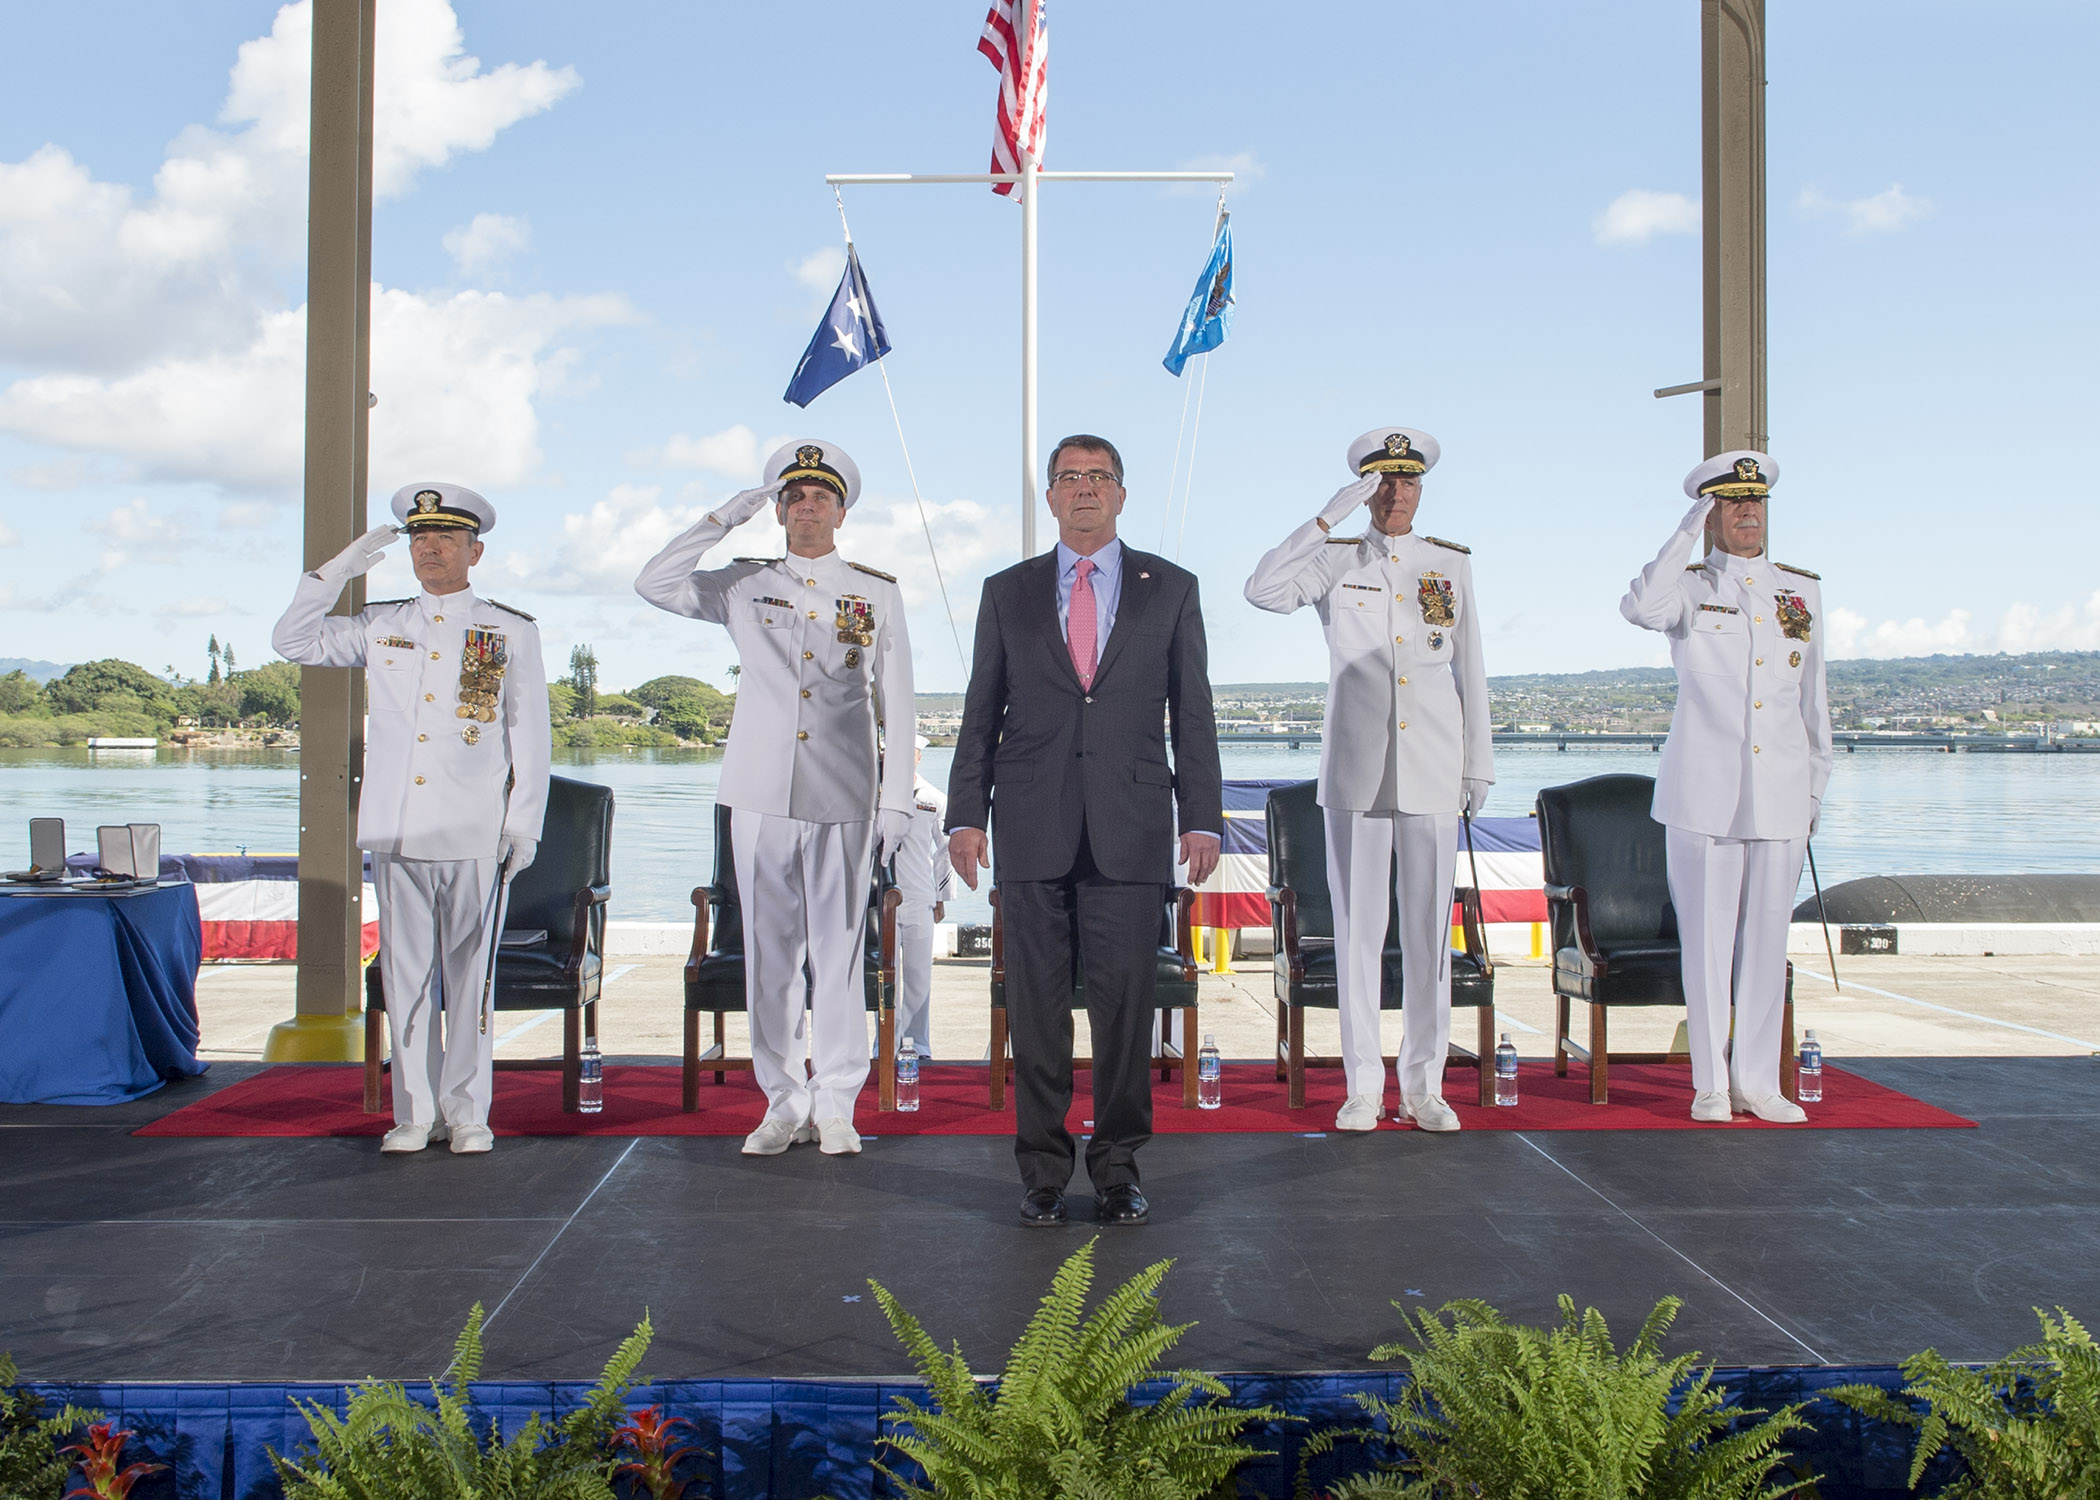 Adm. Harry B. Harris Jr., left, Chief of Naval Operations (CNO) Adm. Jonathan W. Greenert, Secretary of Defense (SECDEF) Ashton Carter, Adm. Samuel J. Locklear III, and Adm. Scott H. Swift, render honors during the joint U.S. Pacific Command (USPACOM) and U.S. Pacific Fleet (PACFLT) change of command ceremony at Joint Base Pearl Harbor-Hickam on May 27, 2015. US Navy photo.